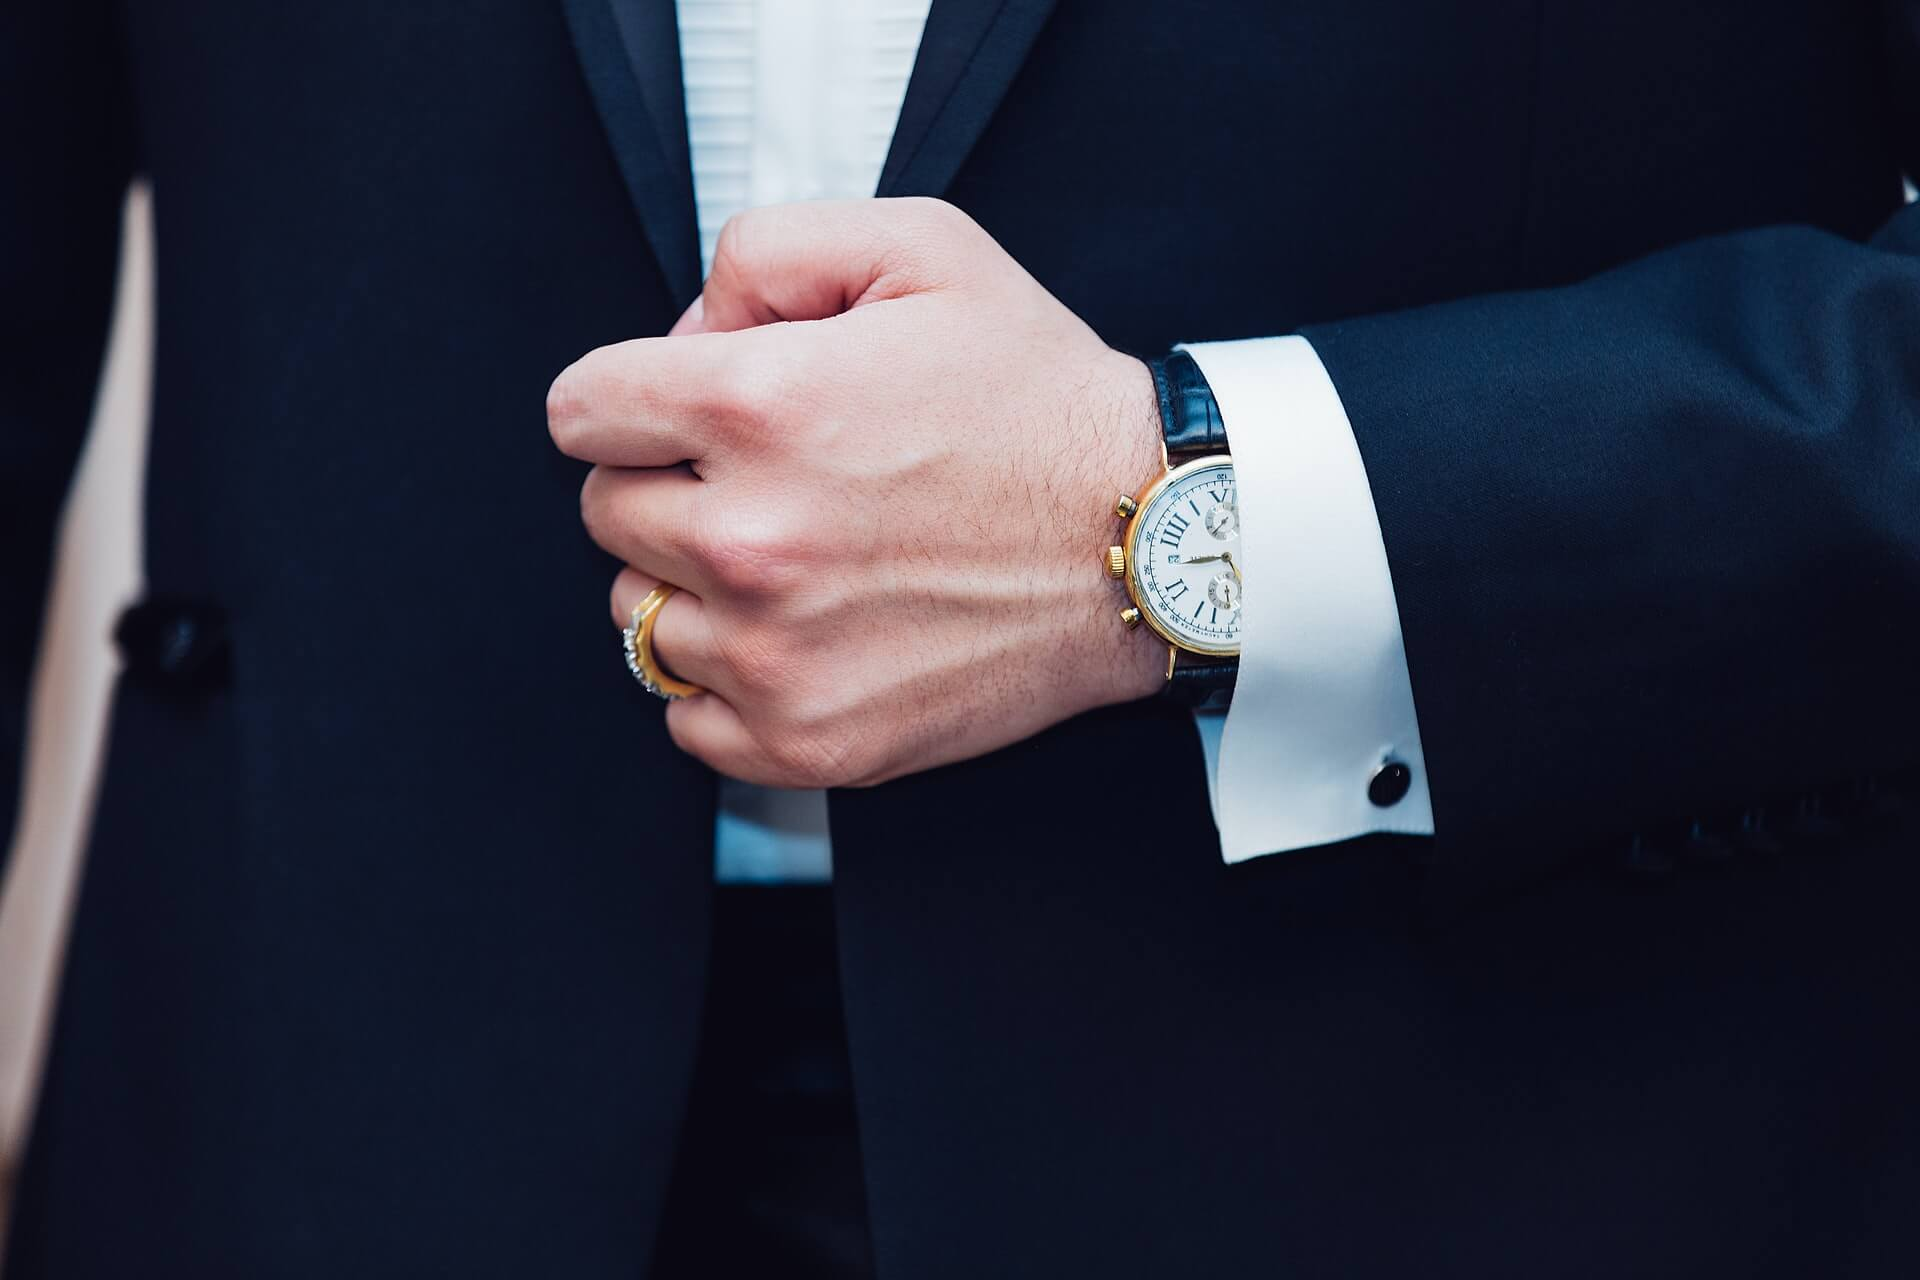 man wearing a suit with an elegant watch